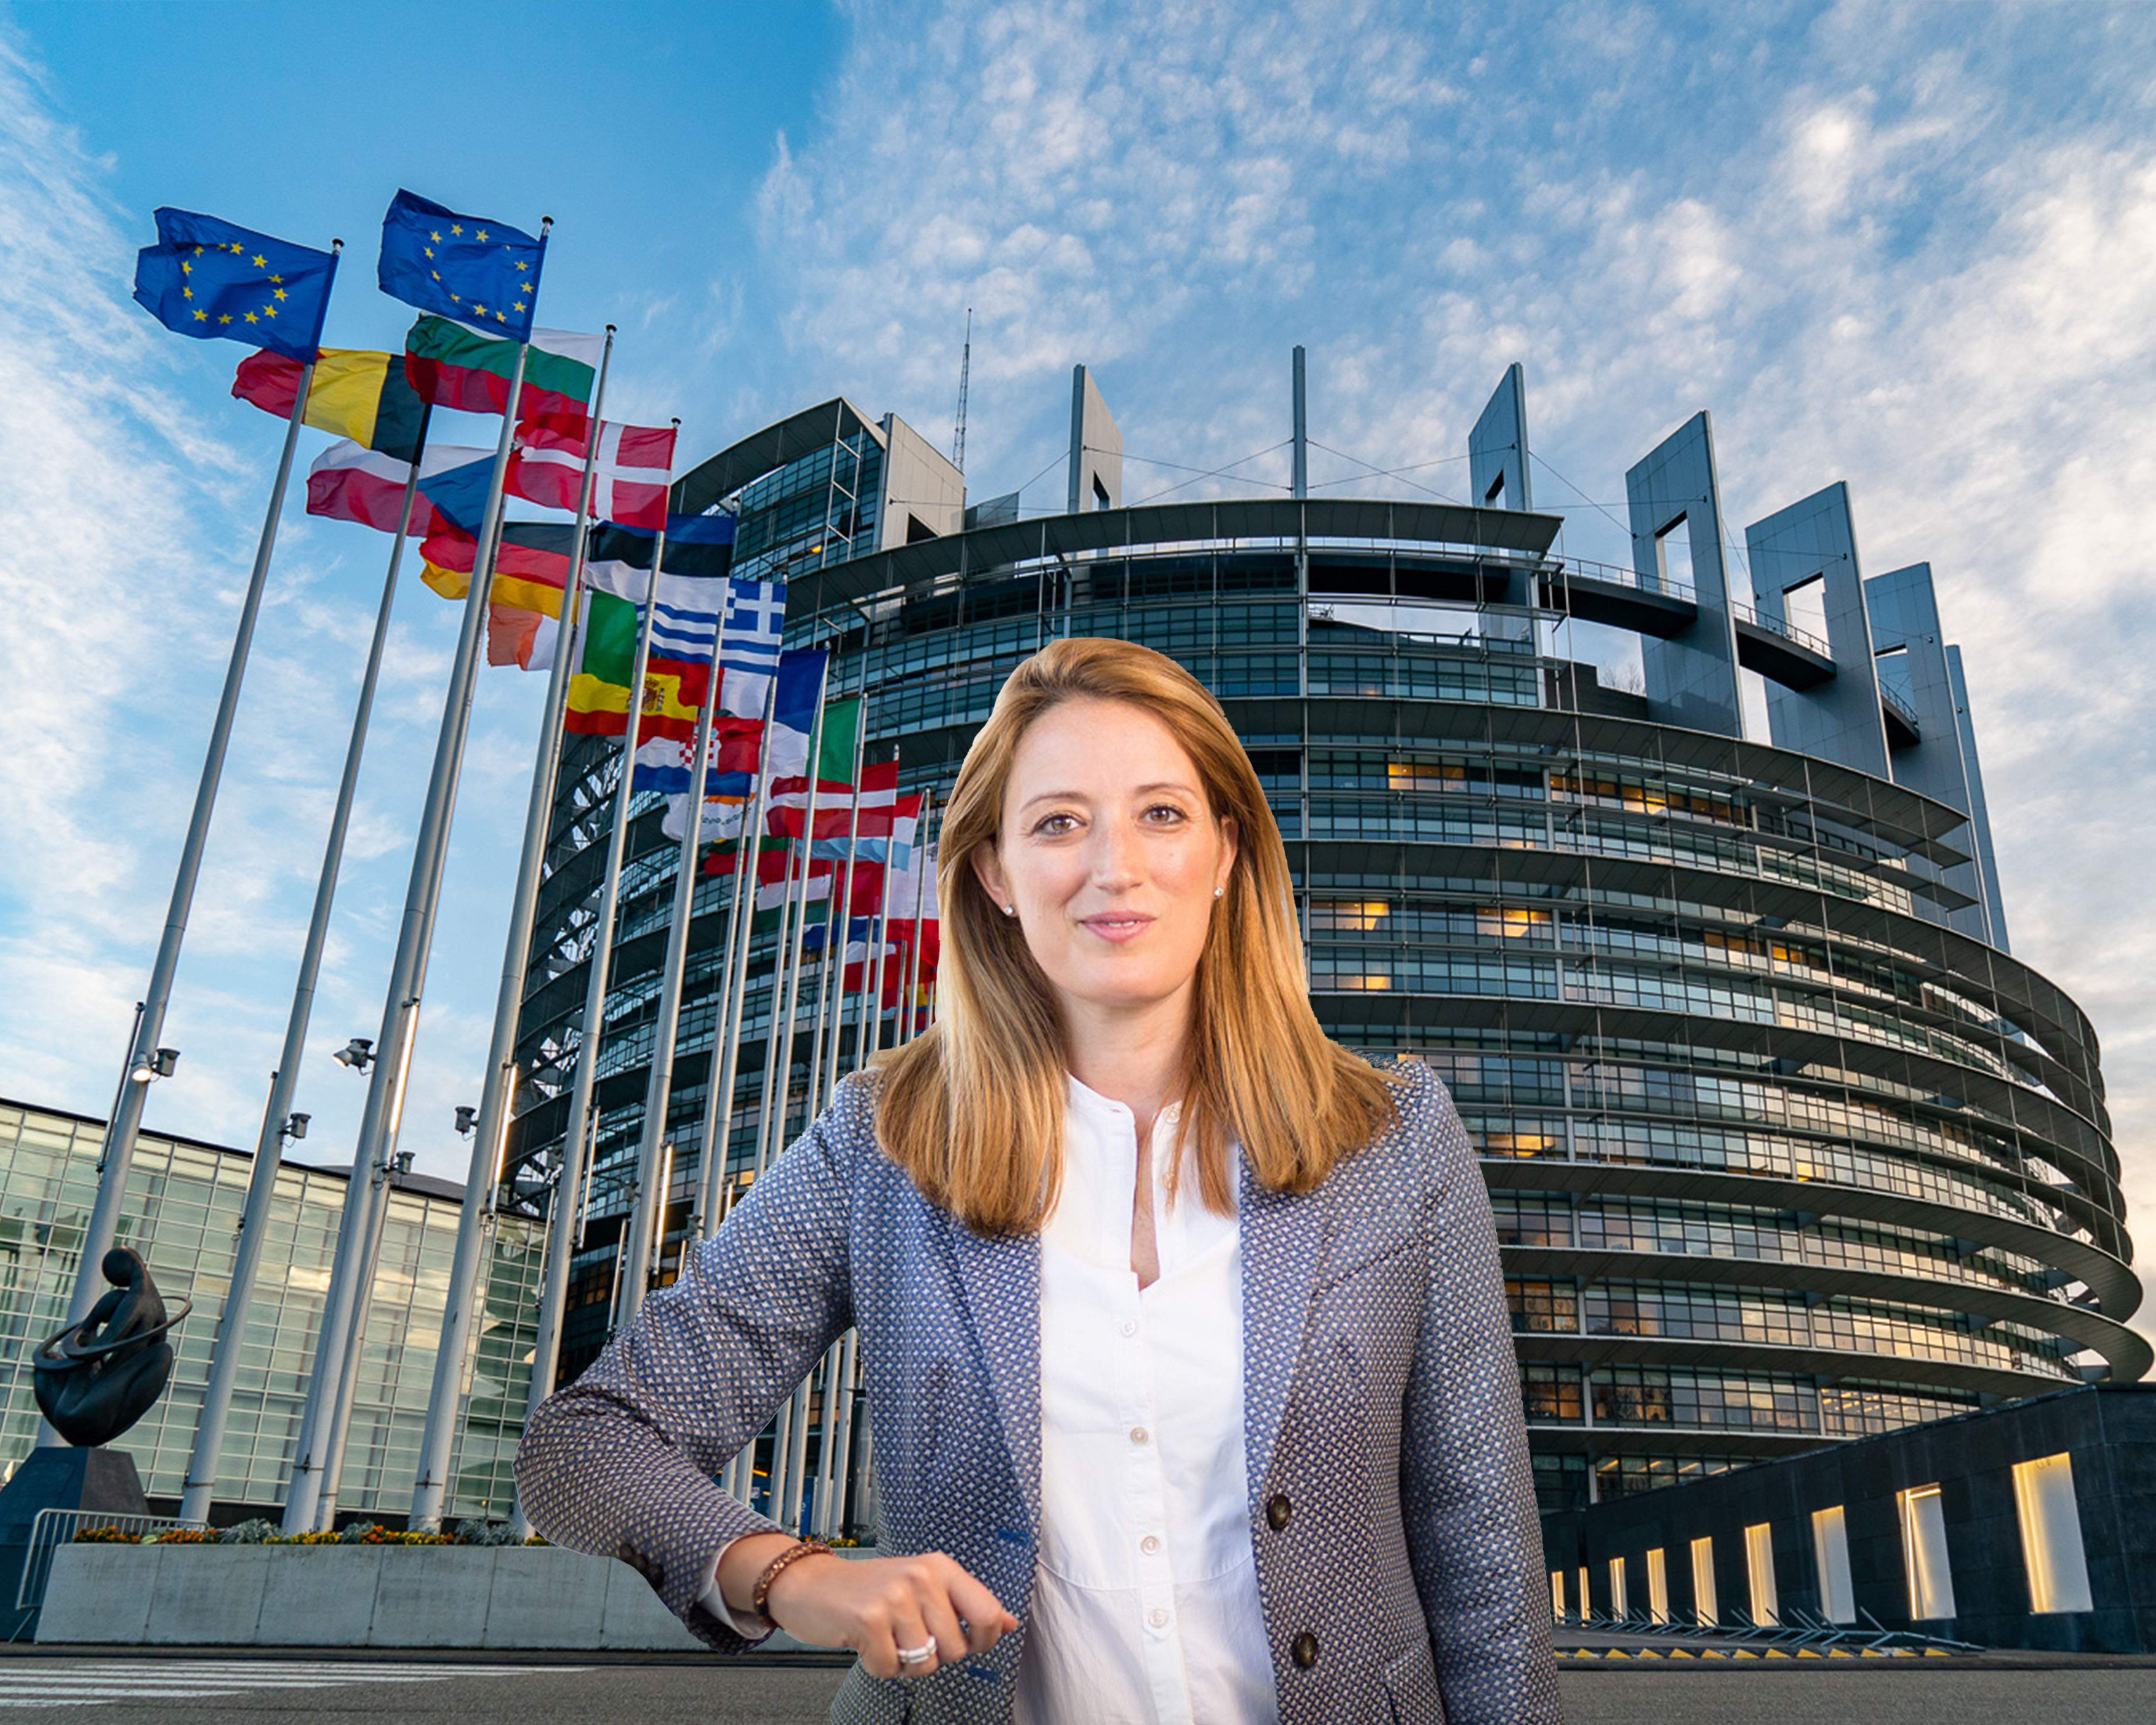 Maltese MEP makes history as she is elected first vice-president of the European Parliament